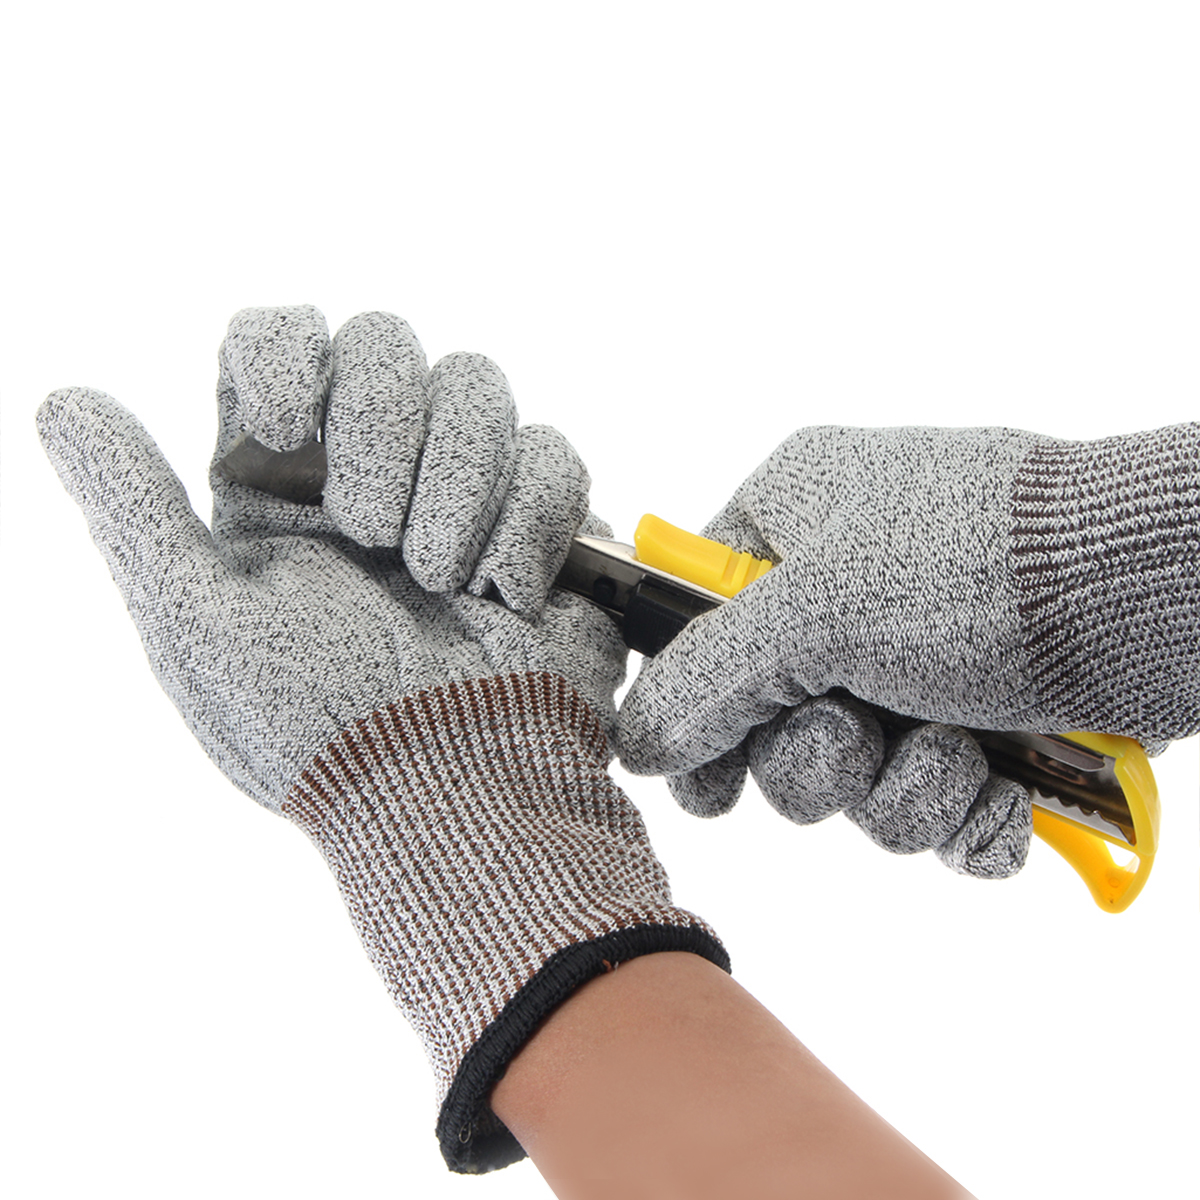 1 Pair Safety Cut-Proof Stab Resistant Stainless Steel Metal Mesh Work Butcher Anit-Cutting Gloves